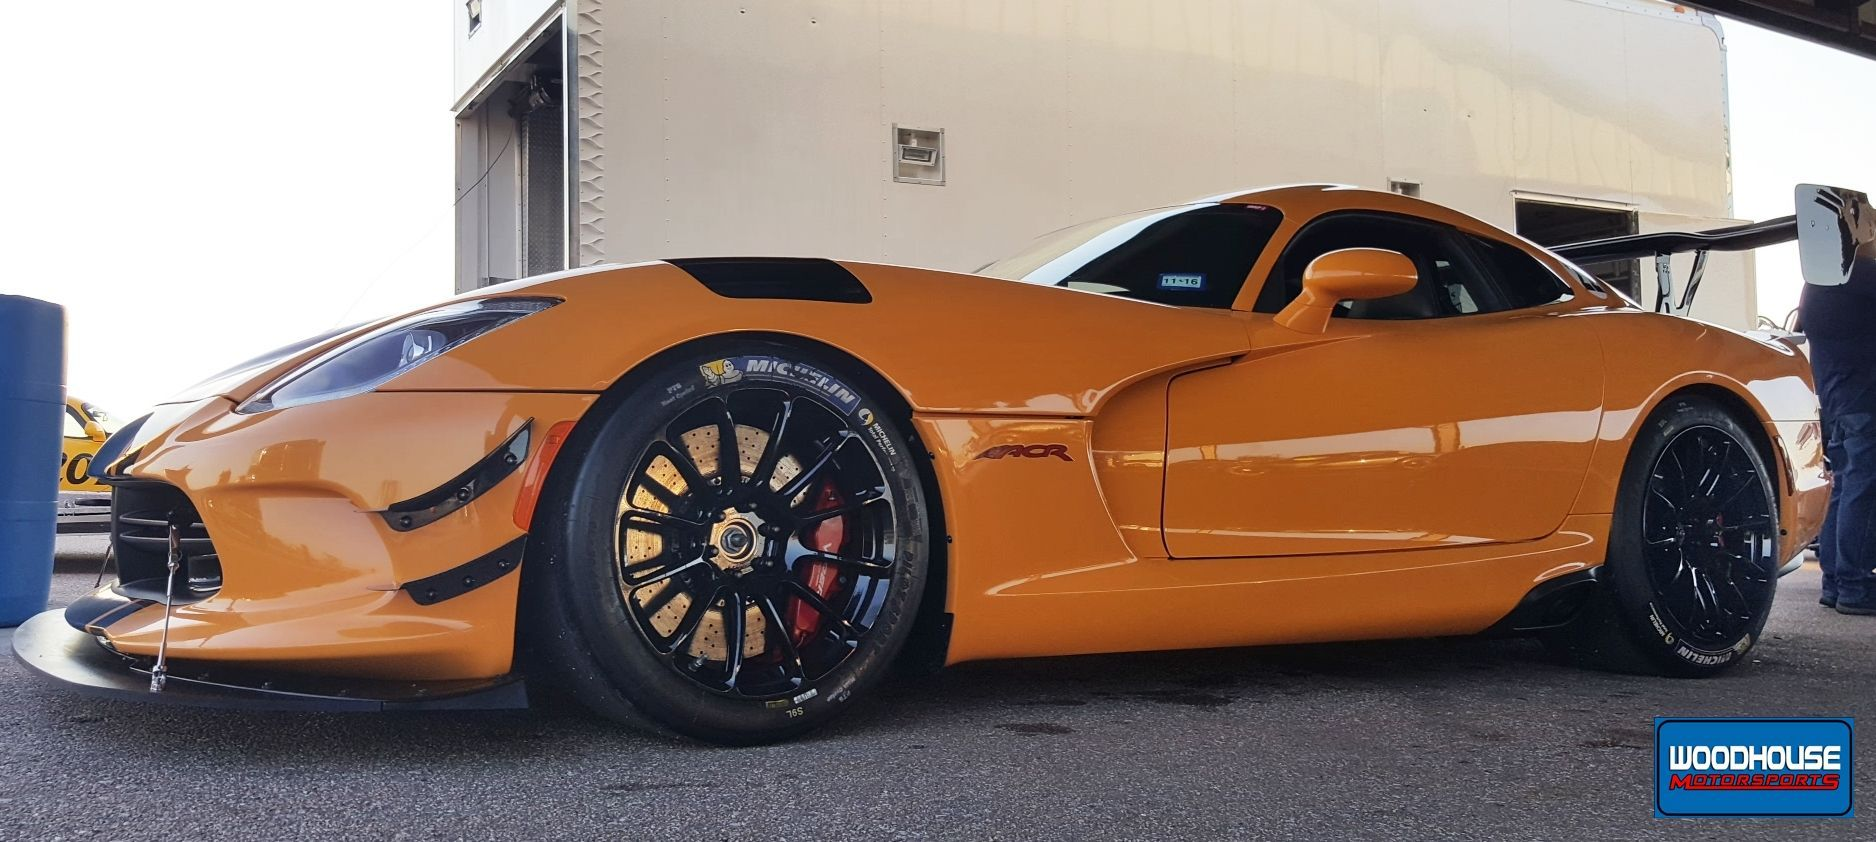 2016 Dodge Viper | JD Hertweck's Dodge Viper ACR Extreme on Forgeline One Piece Forged Monoblock GTD1-Viper Wheels